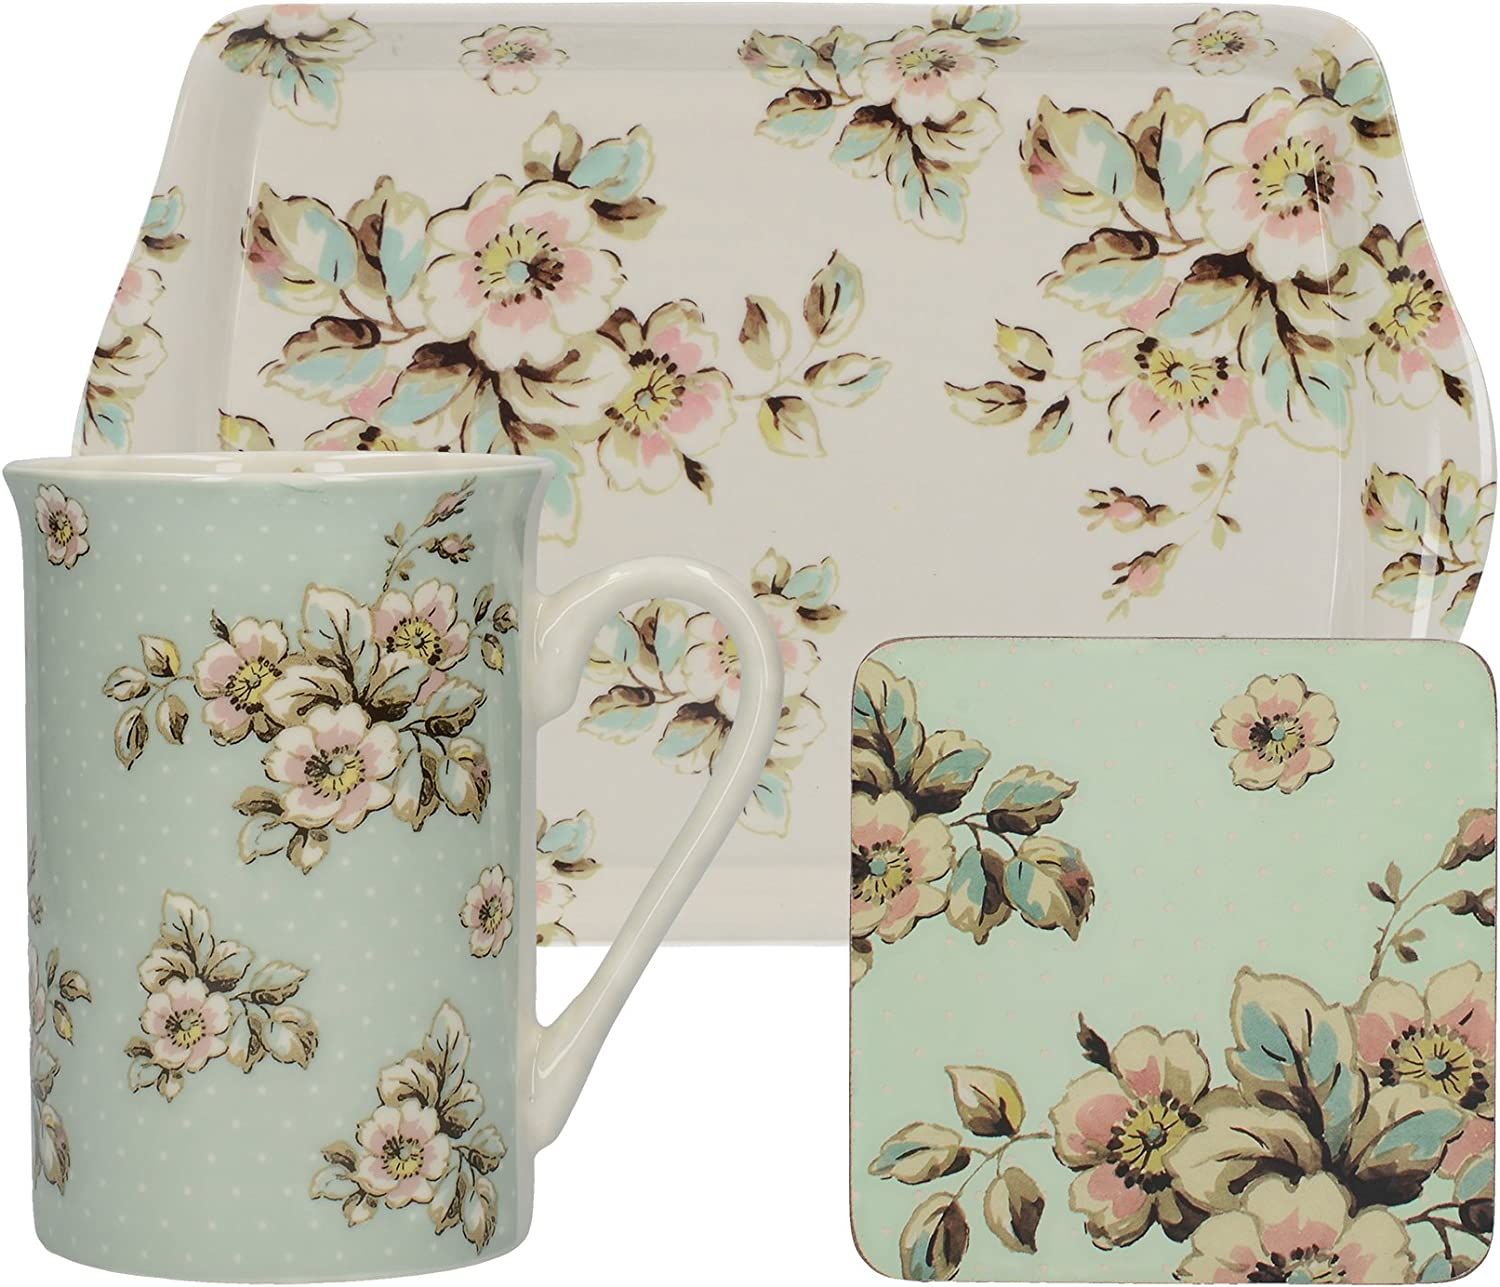 """Katie Alice /""""English Garden/"""" Tall Porcelain Jug by Creative Tops 1200 ml 2 Pints"""